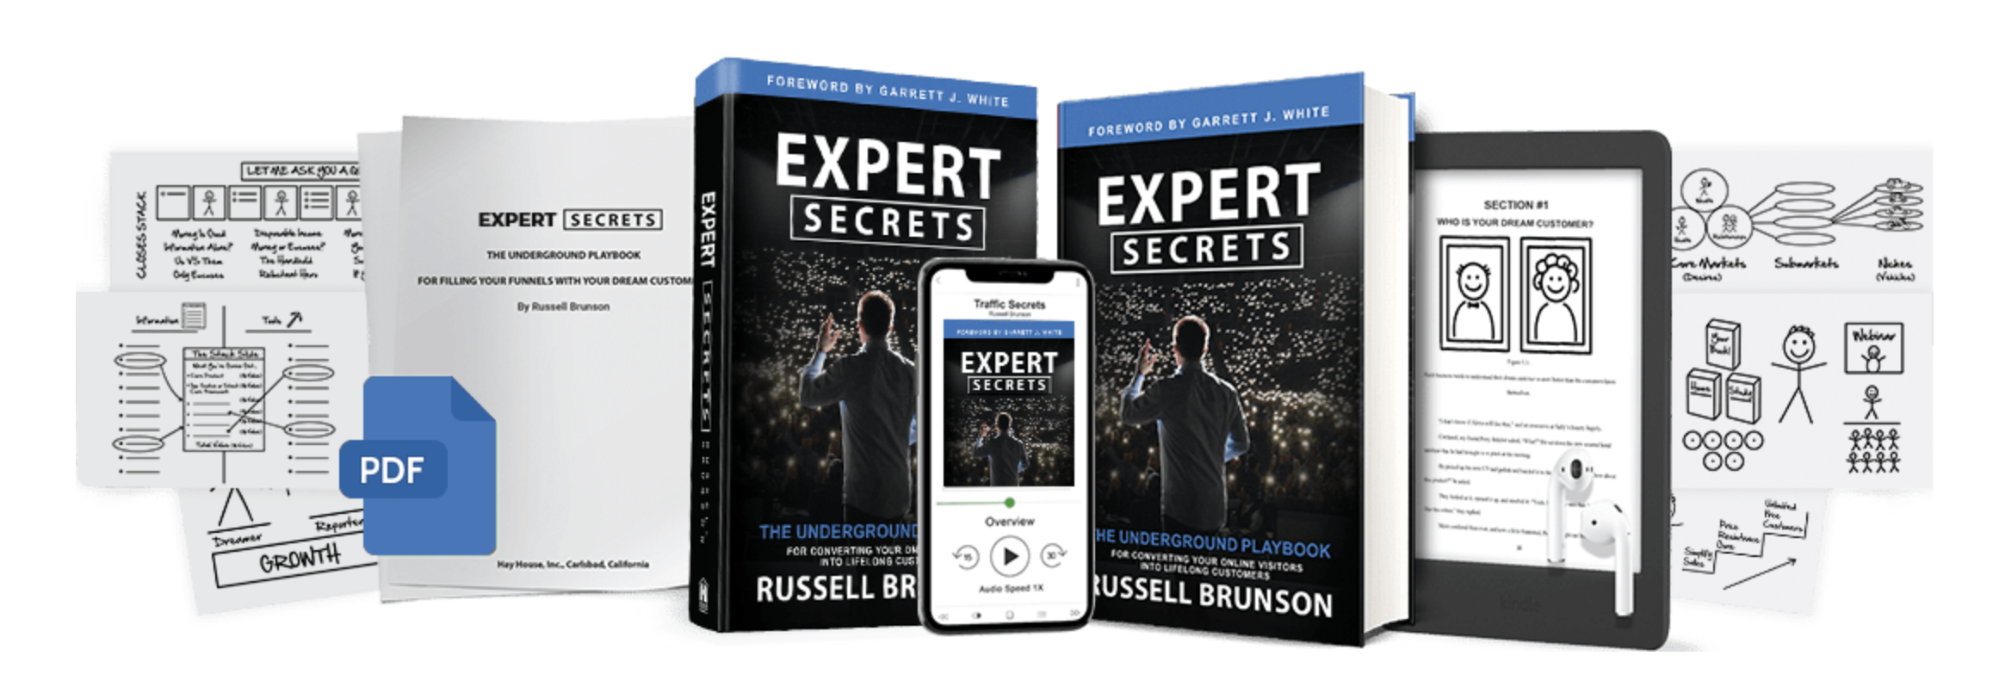 expert secrets review book